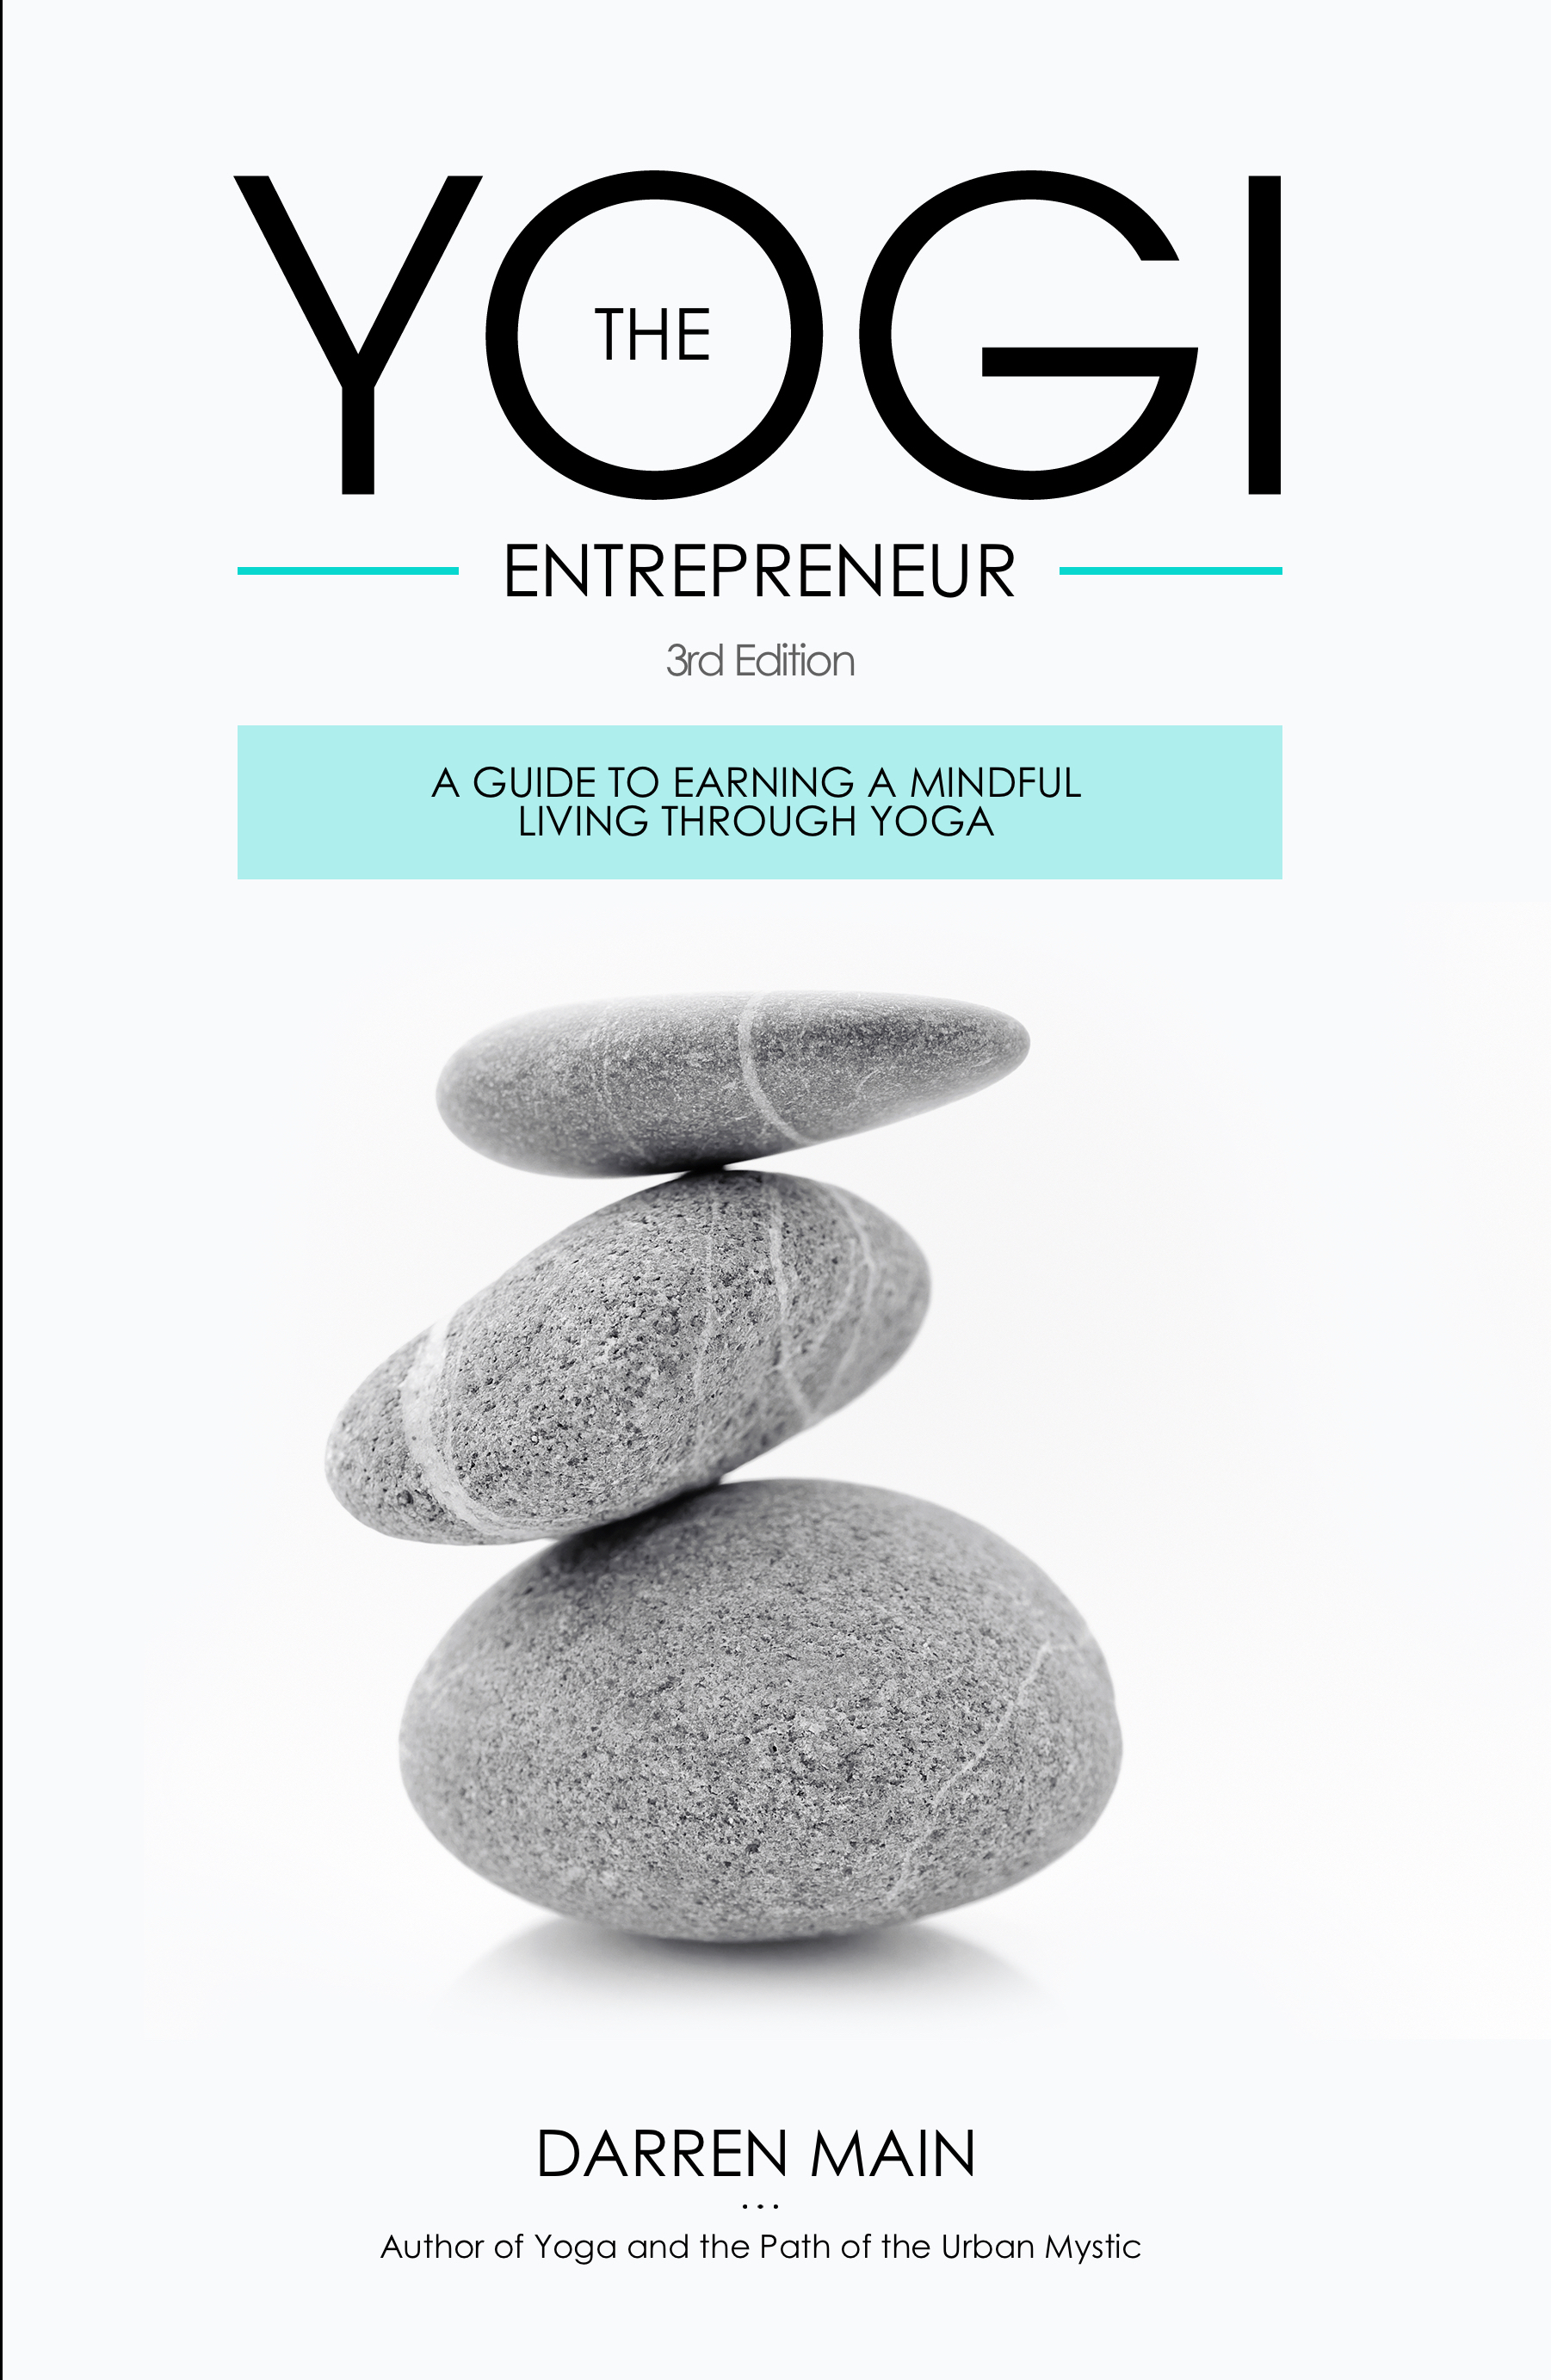 The Yogi Entrepreneur A Guide to Earning a Mindful Living Through Yoga 3rd Edition